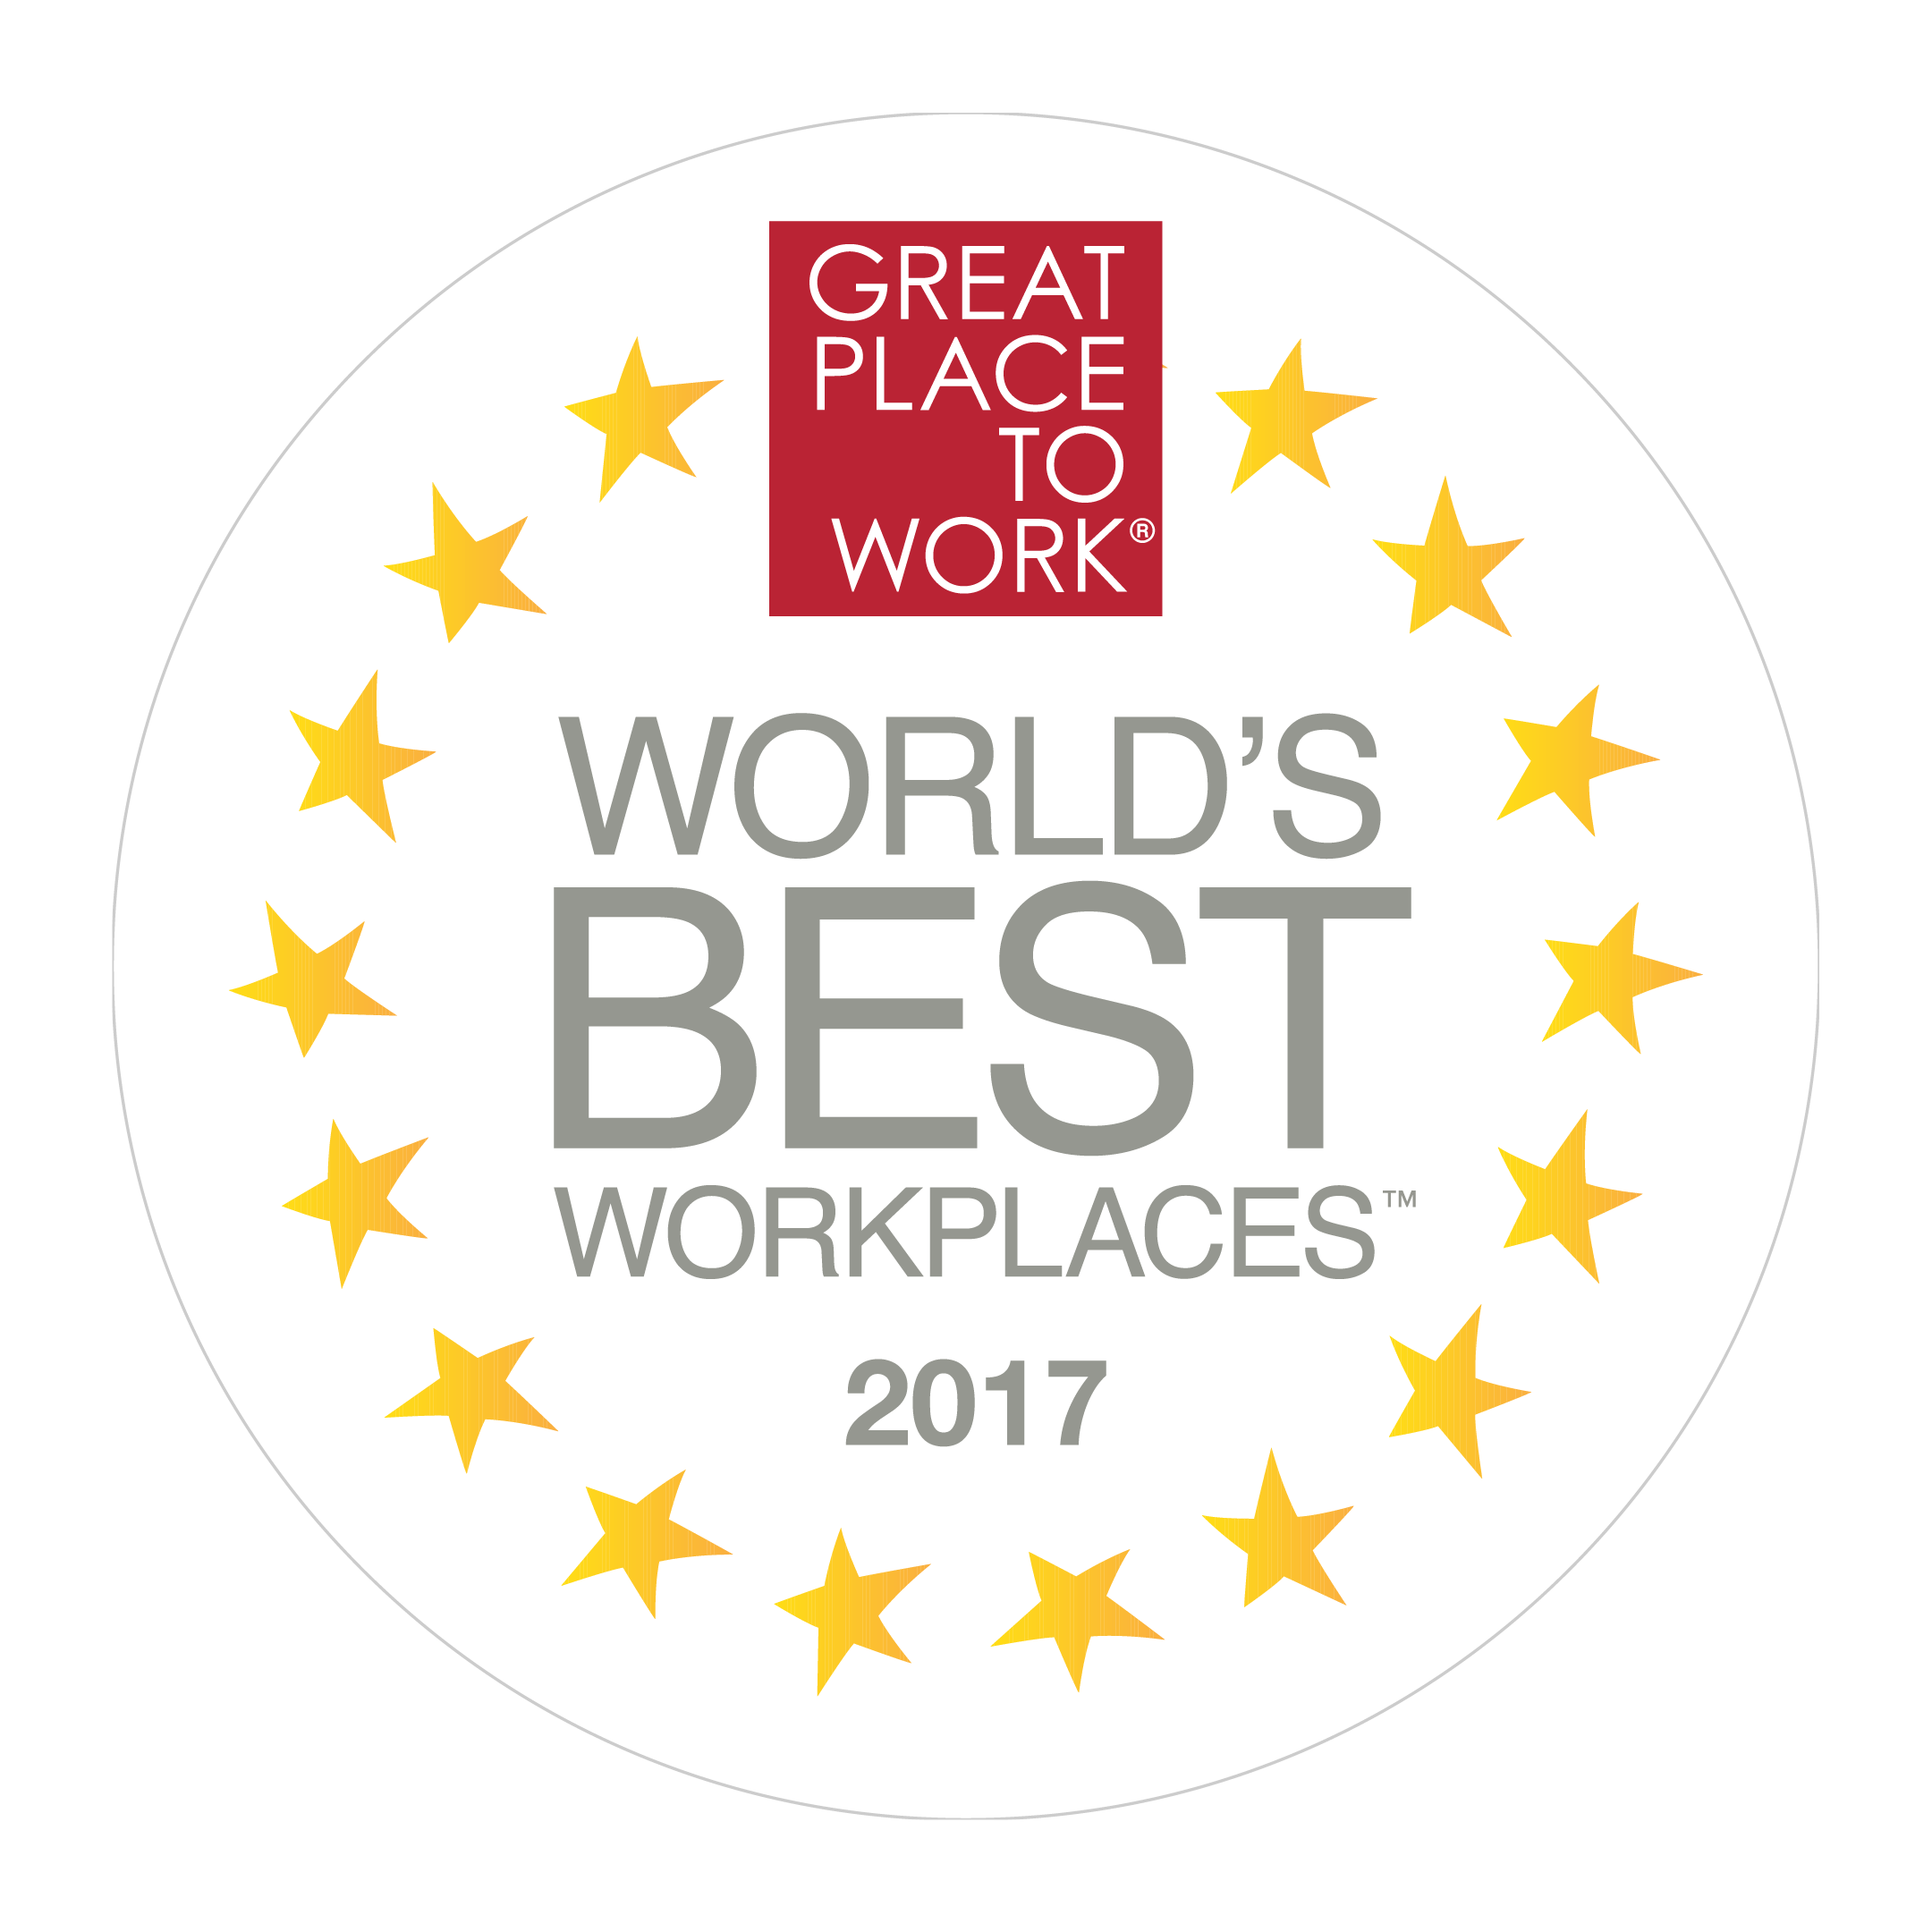 great place to work Kickstart your employer brand & employee recruitment apply to best places to work for recognition in your business community.